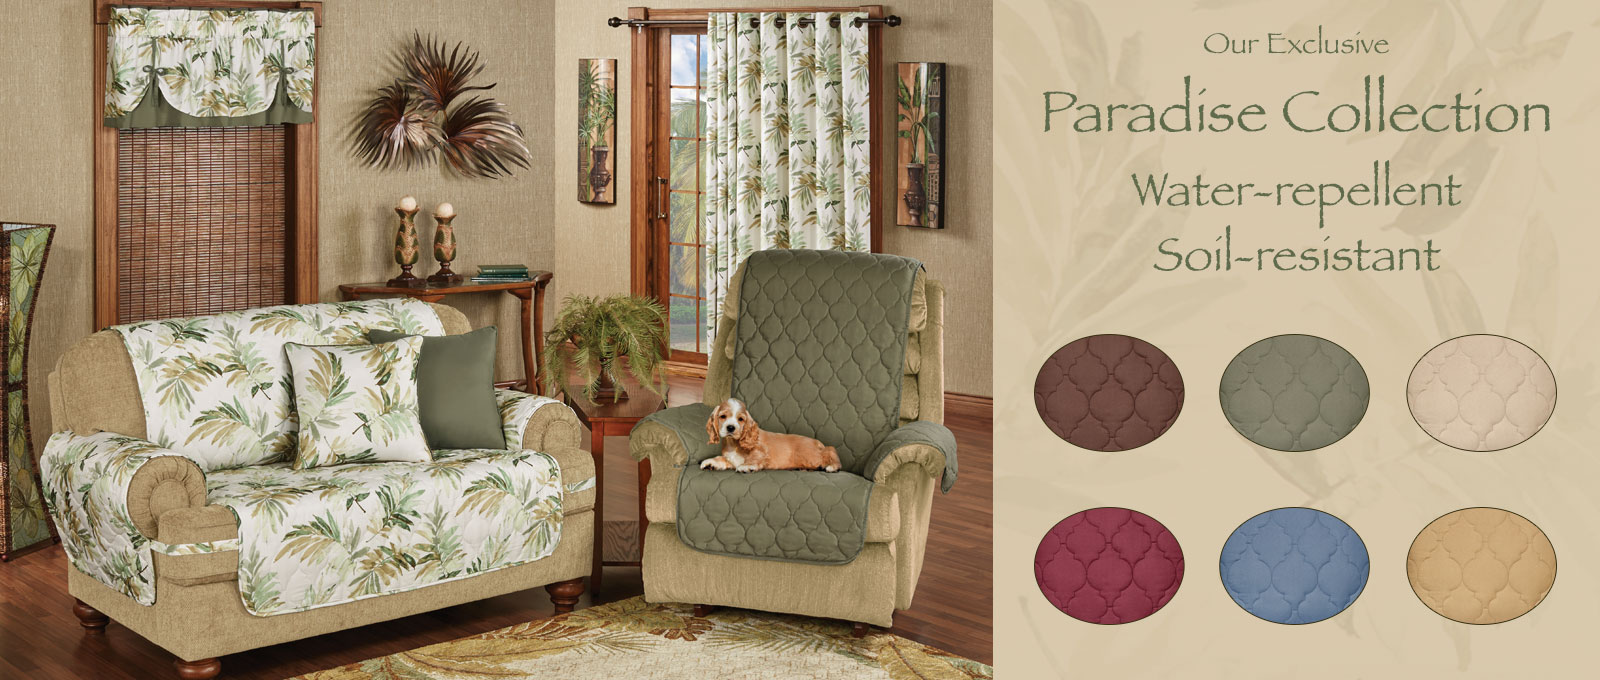 Tropical Paradise Furniture Cover Collection